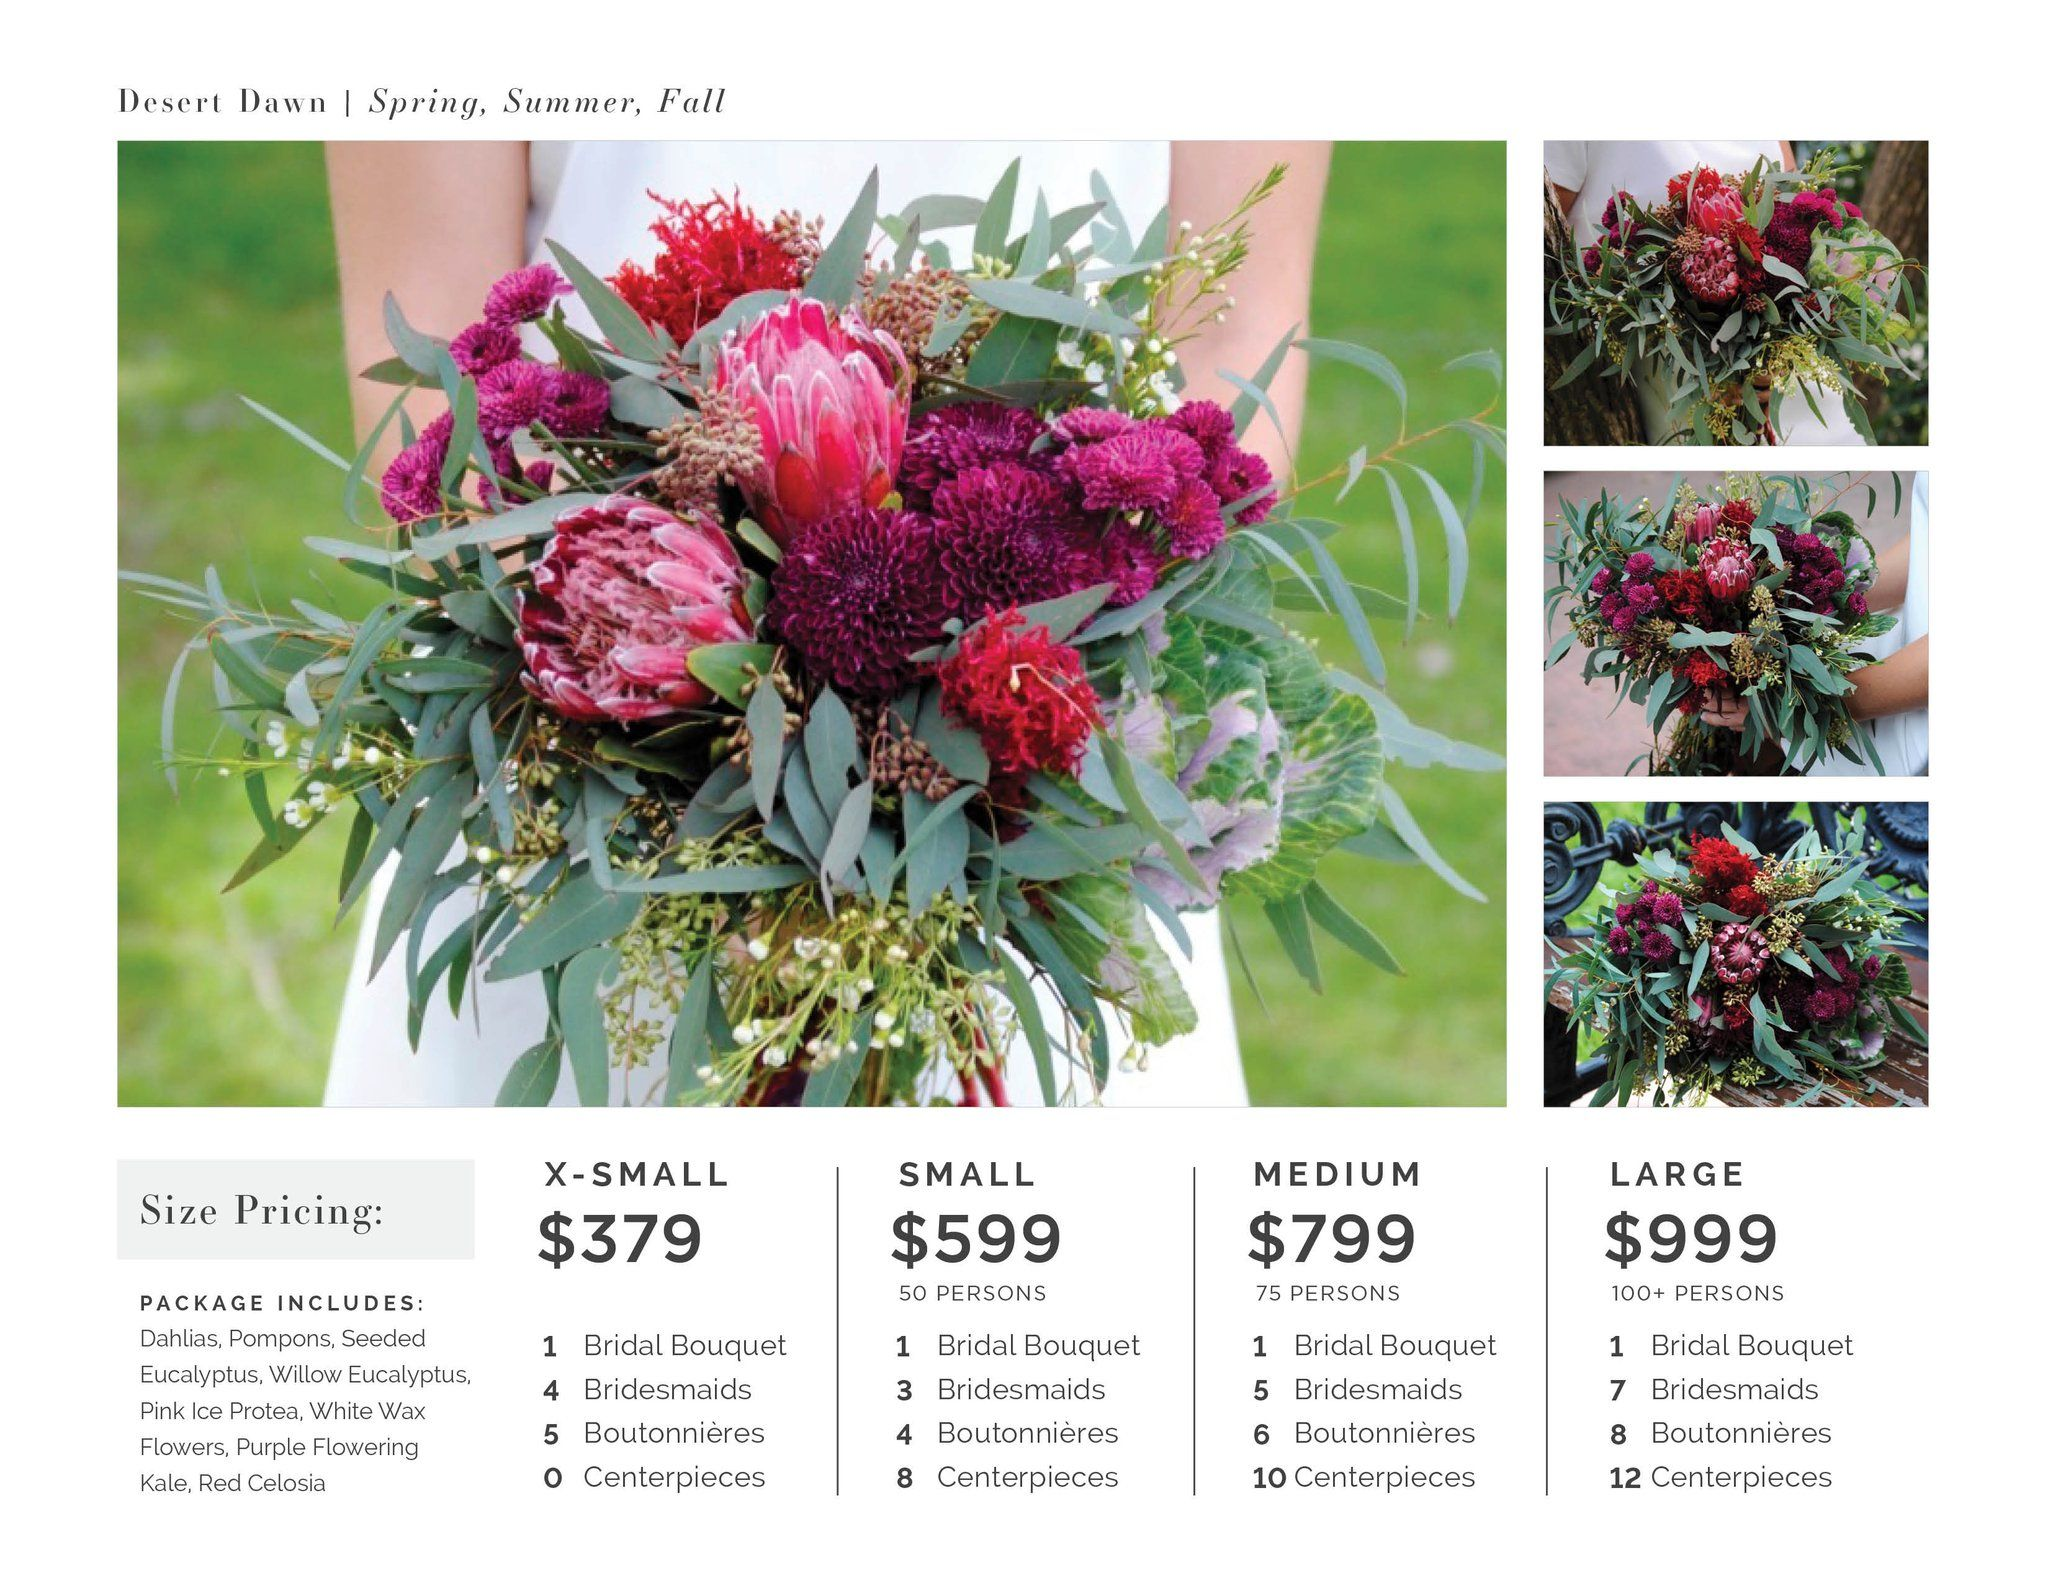 Love the colors and wild florals!